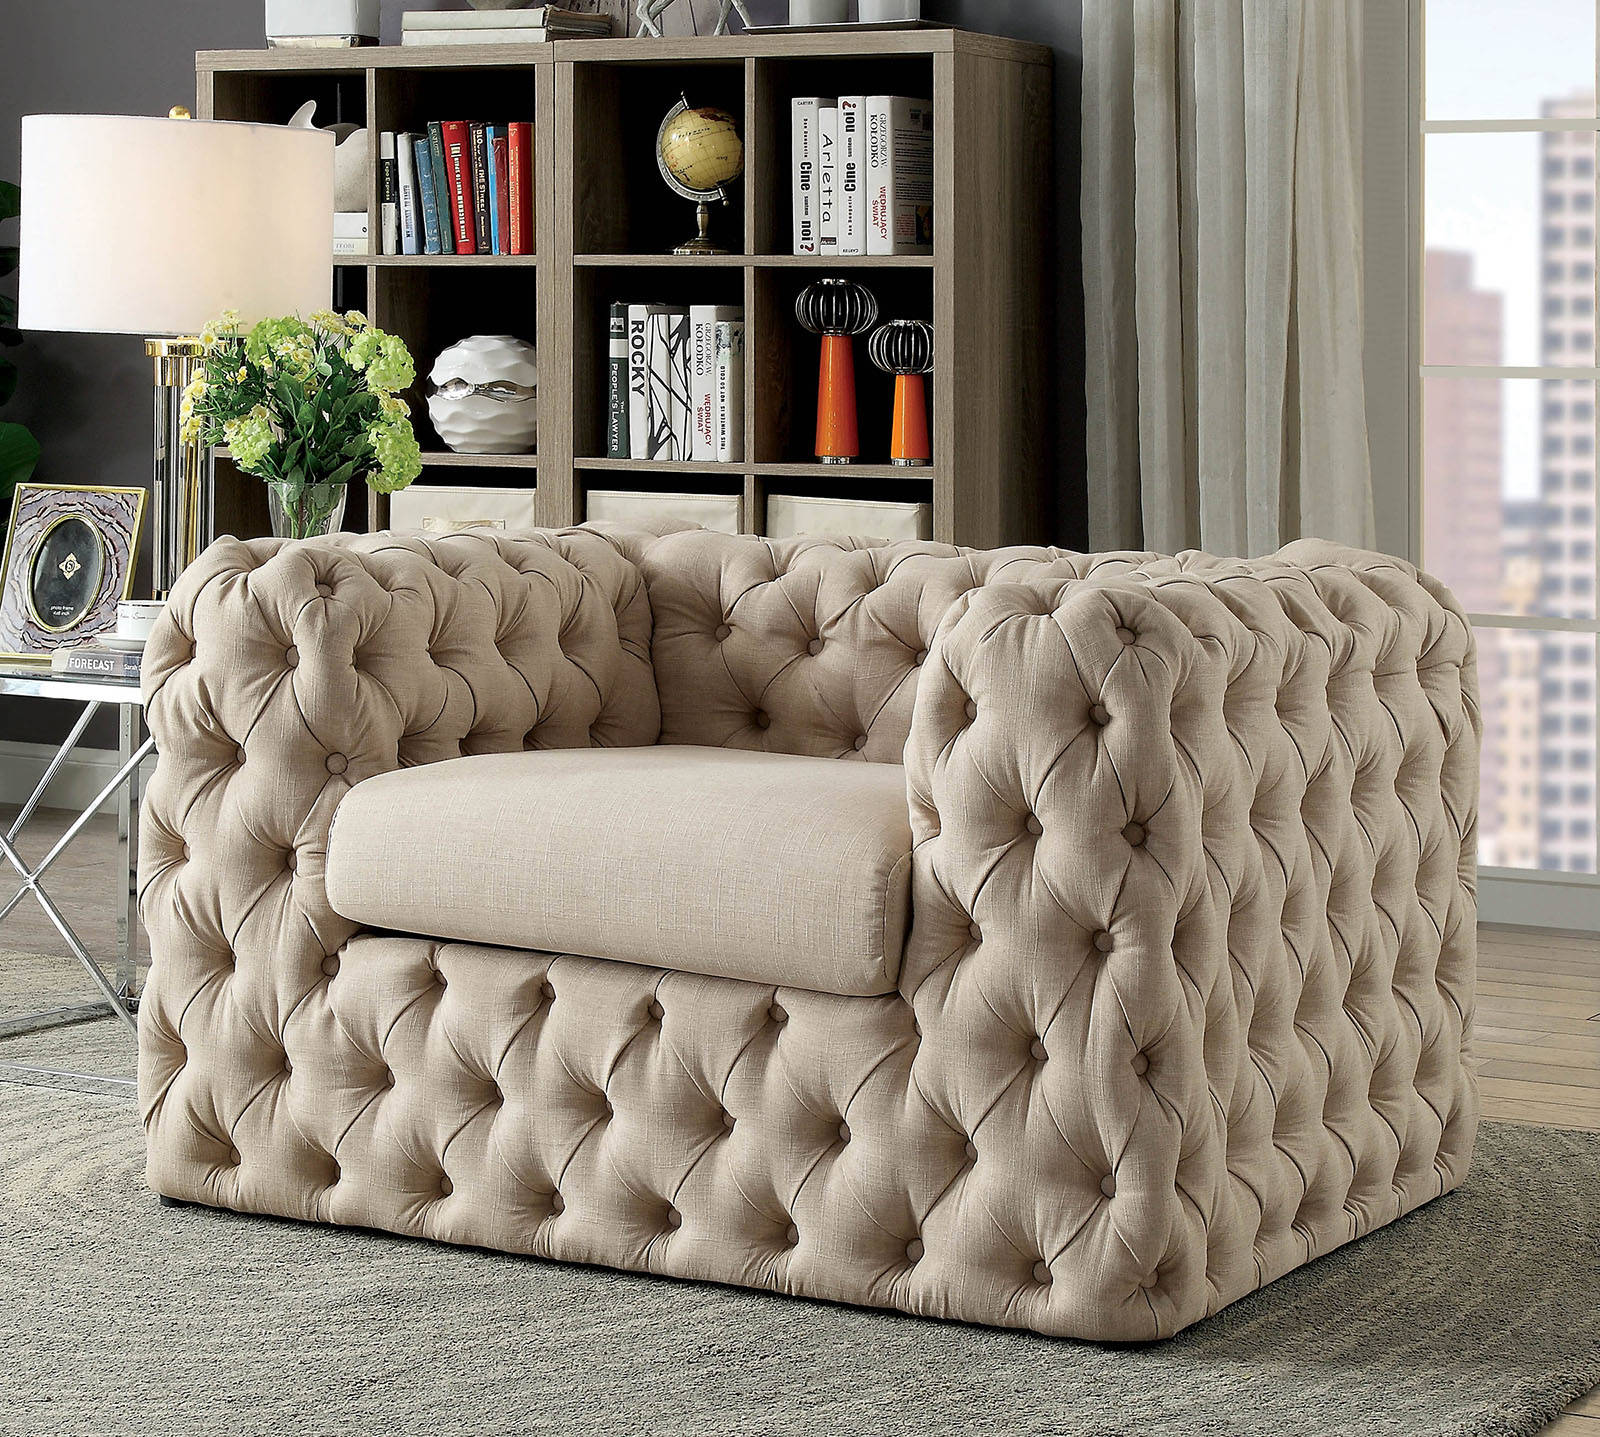 Furniture Of America Gia Beige Chair The Classy Home